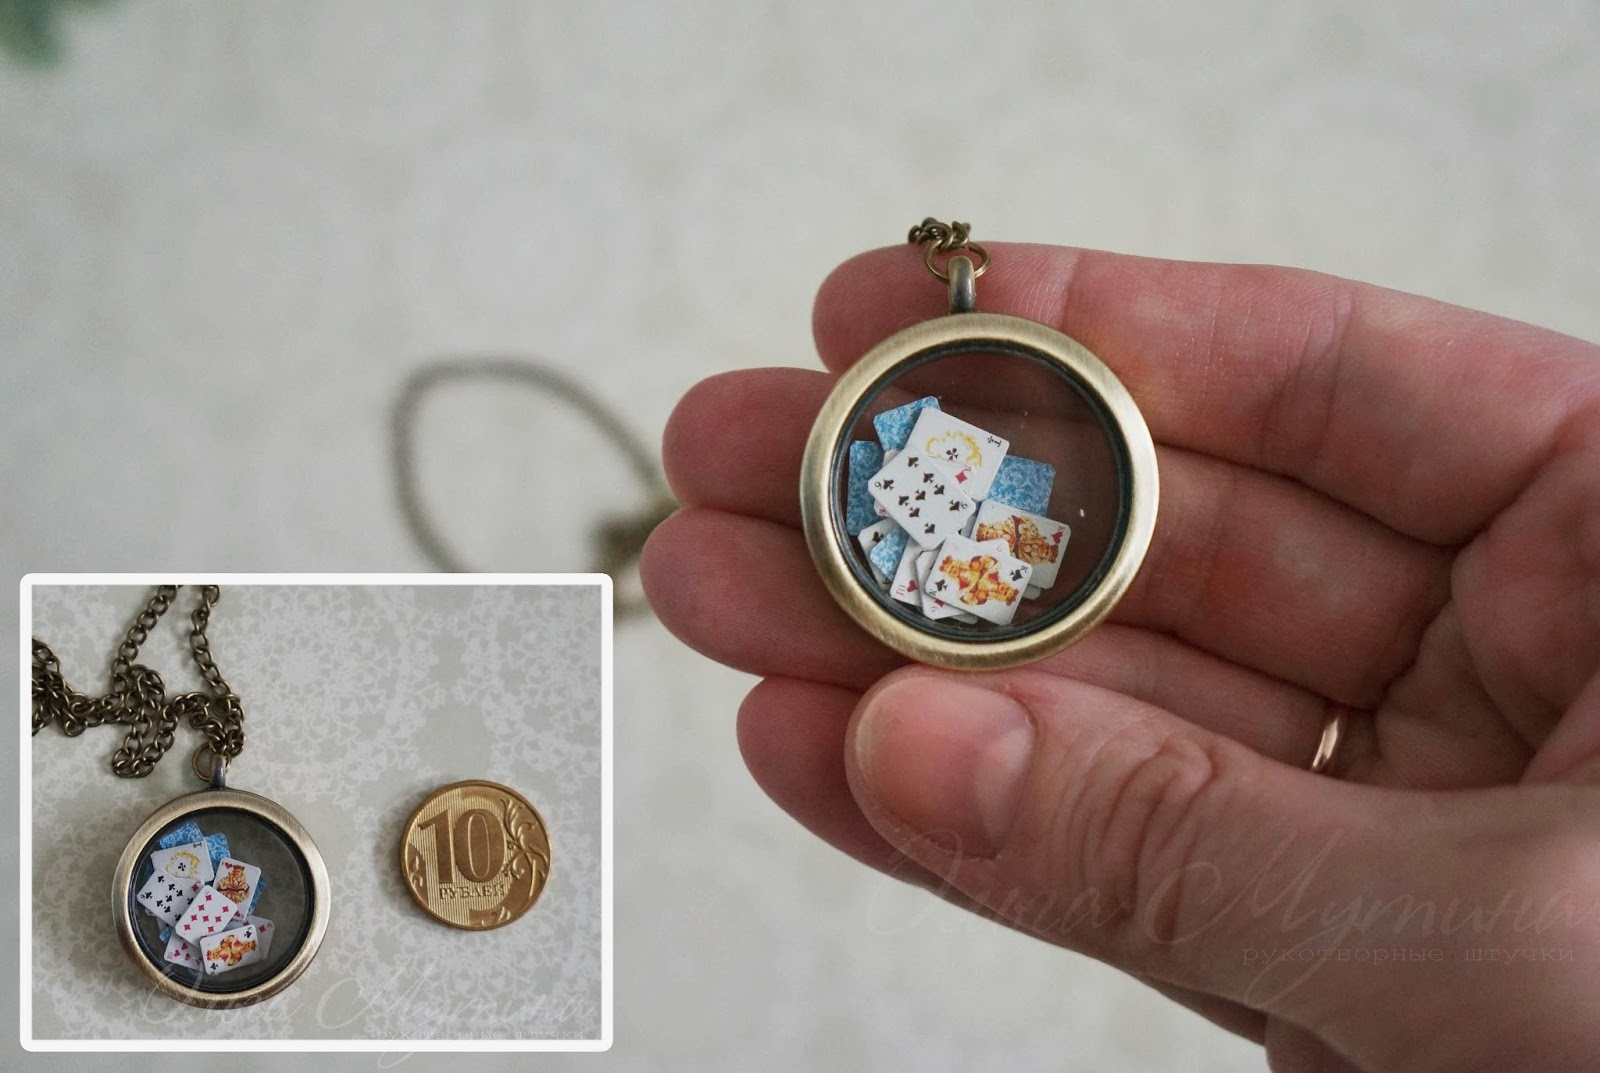 Pet Loss Memorial Jewelry,Sterling Silver Lockets Miniature photos for lockets